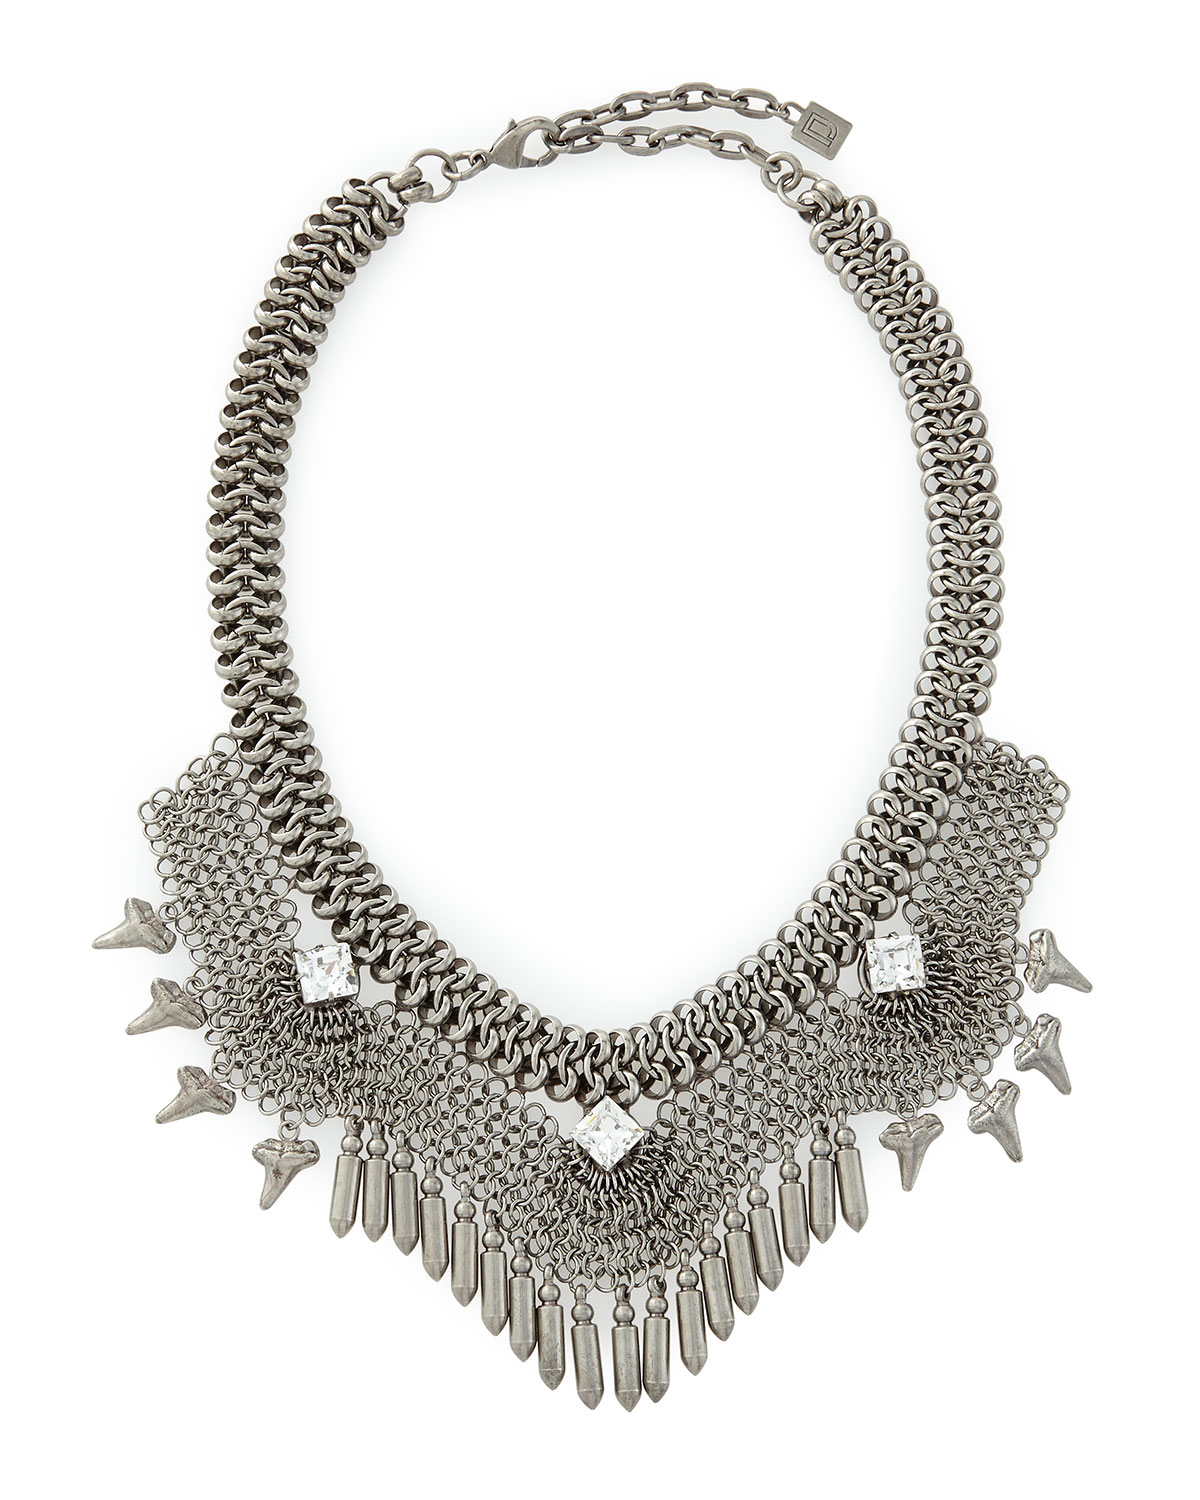 Langley Mesh Crystal Necklace